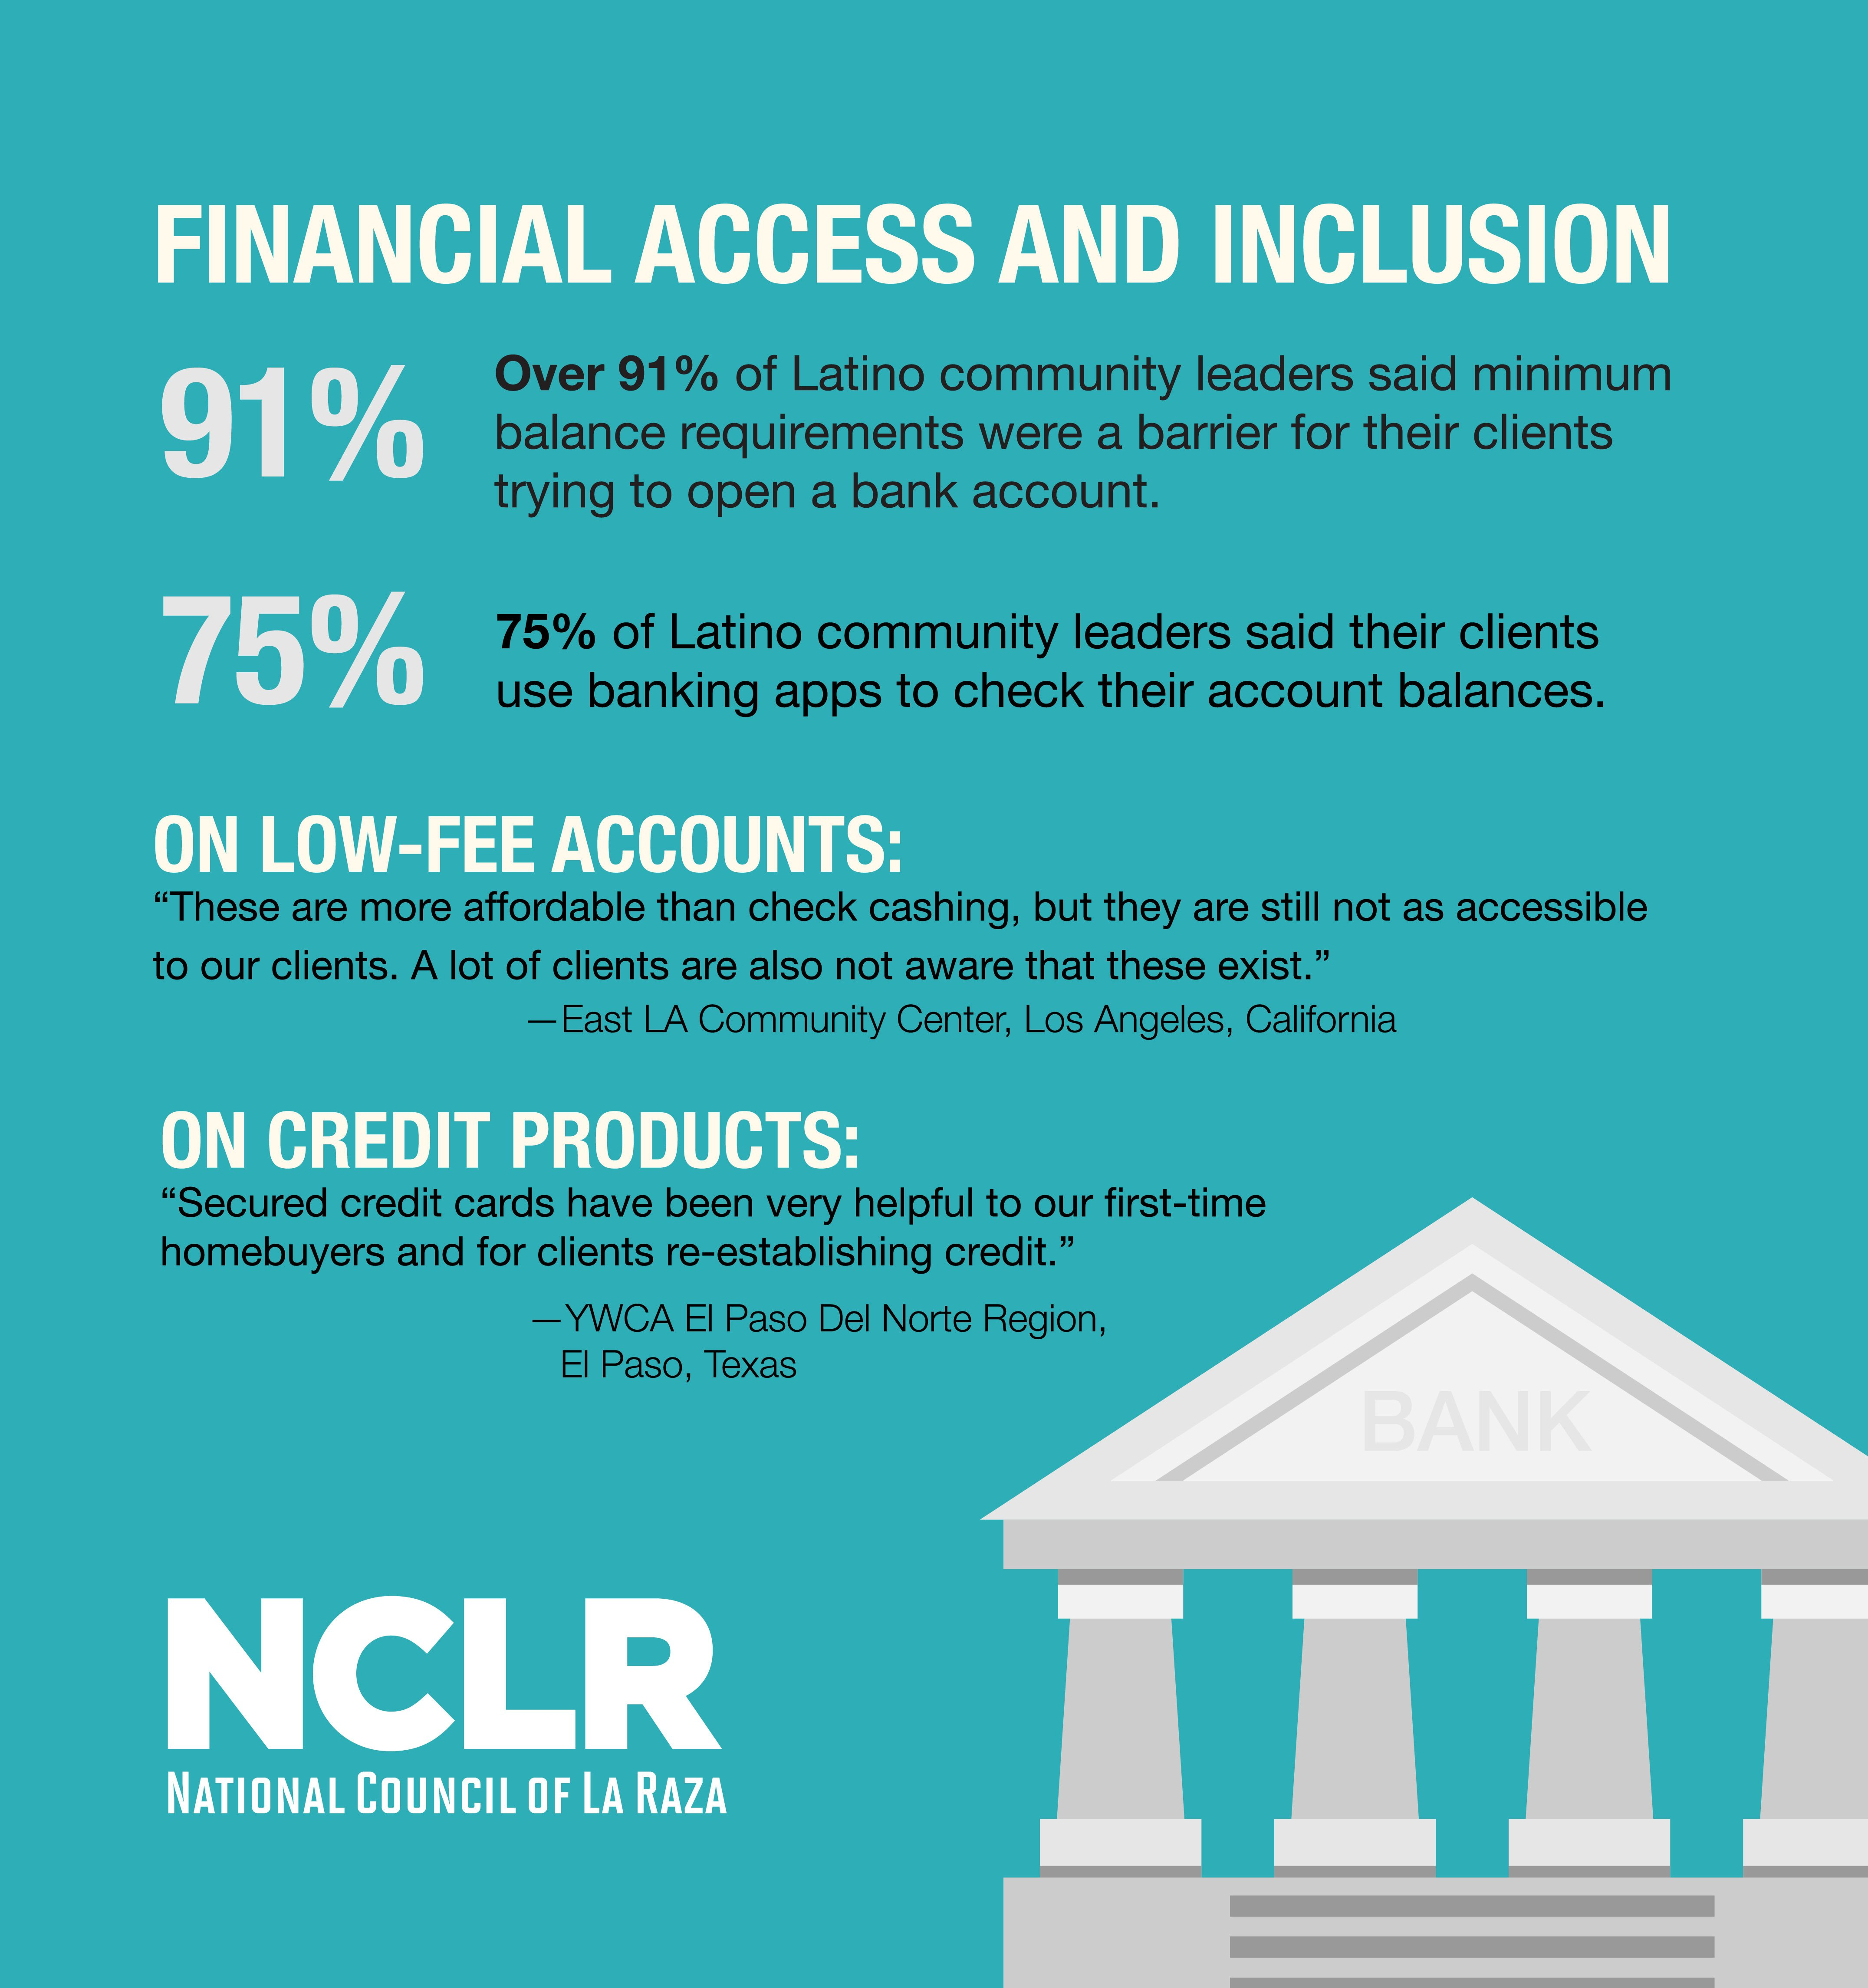 Financial-access-sharegraphic